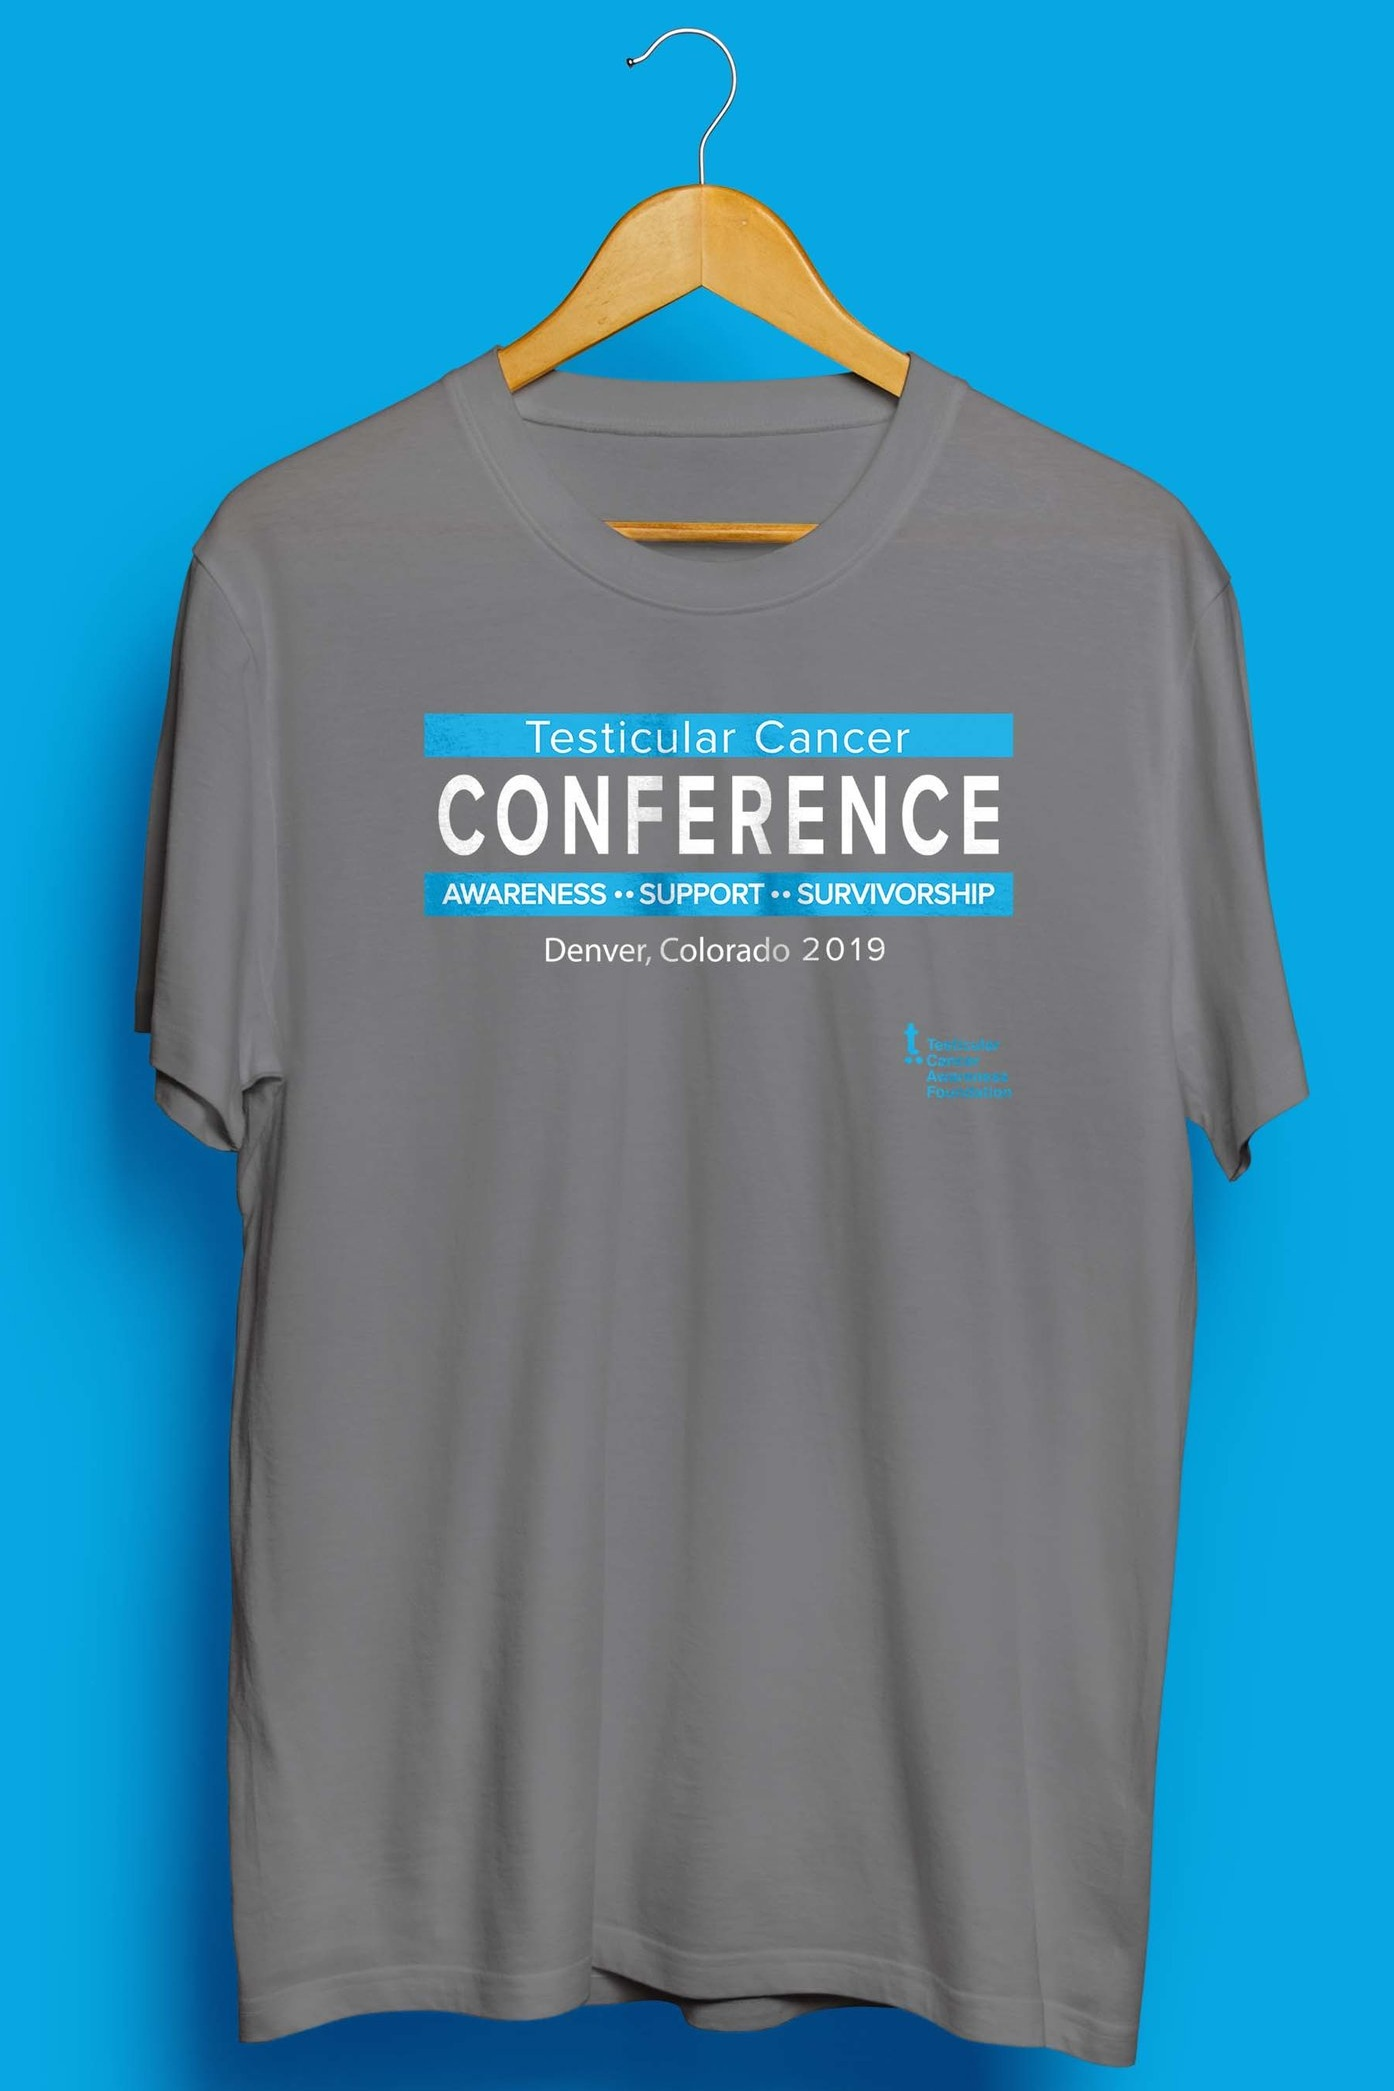 Testicular Cancer Conference T-Shirt